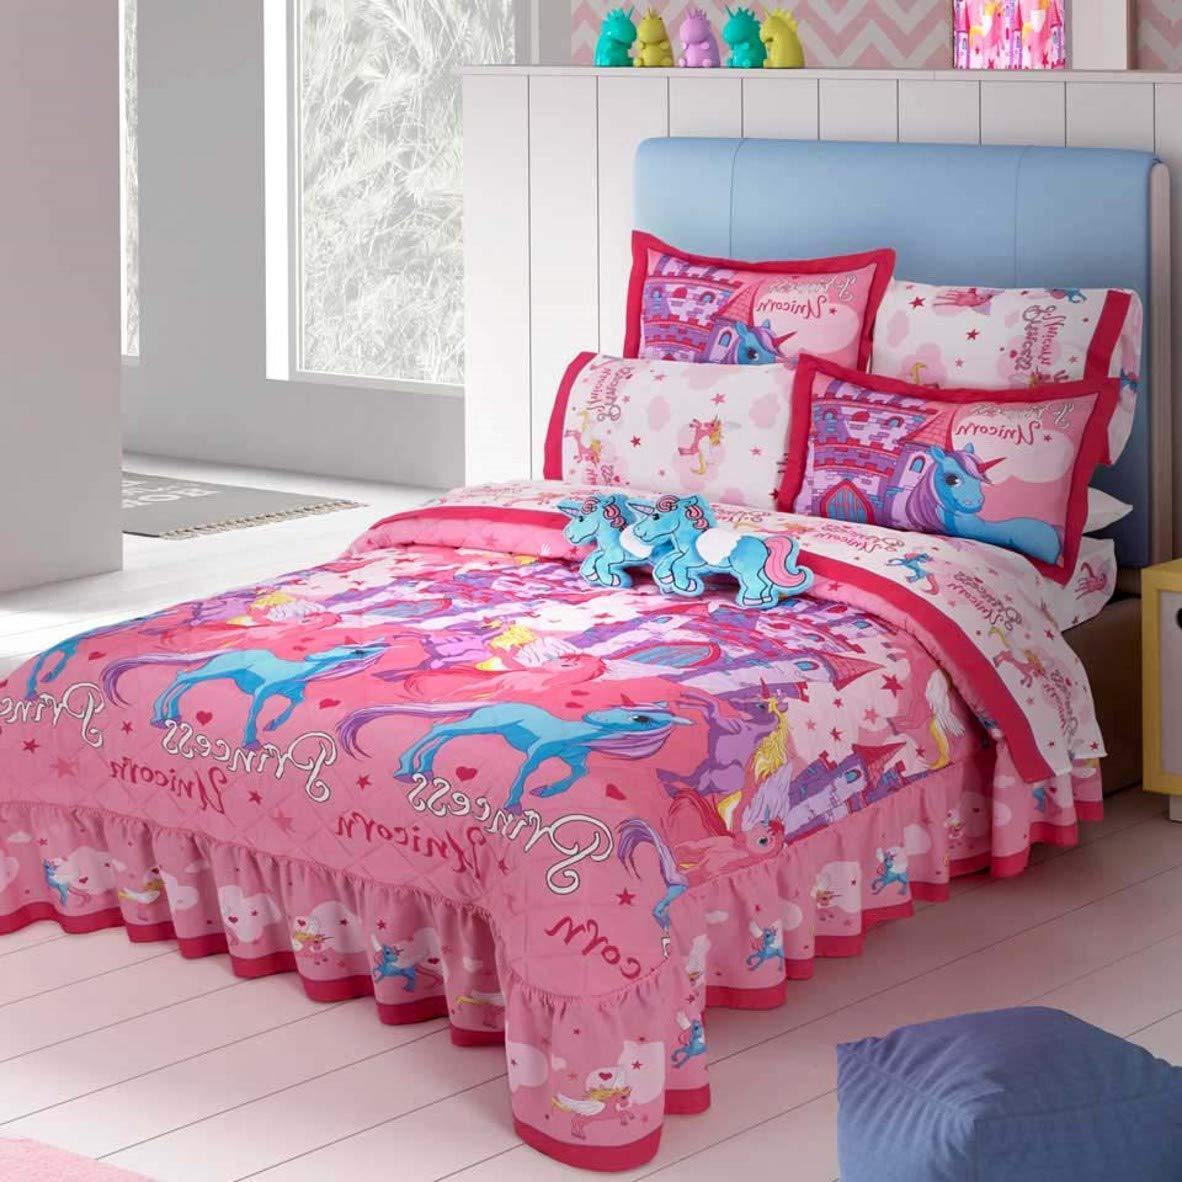 Drops /& Blooms Bed Runner 34 x 86 Drops /& Blooms Bed Runner 34 x 86 MA2002ABR01 Kess InHouse Apples